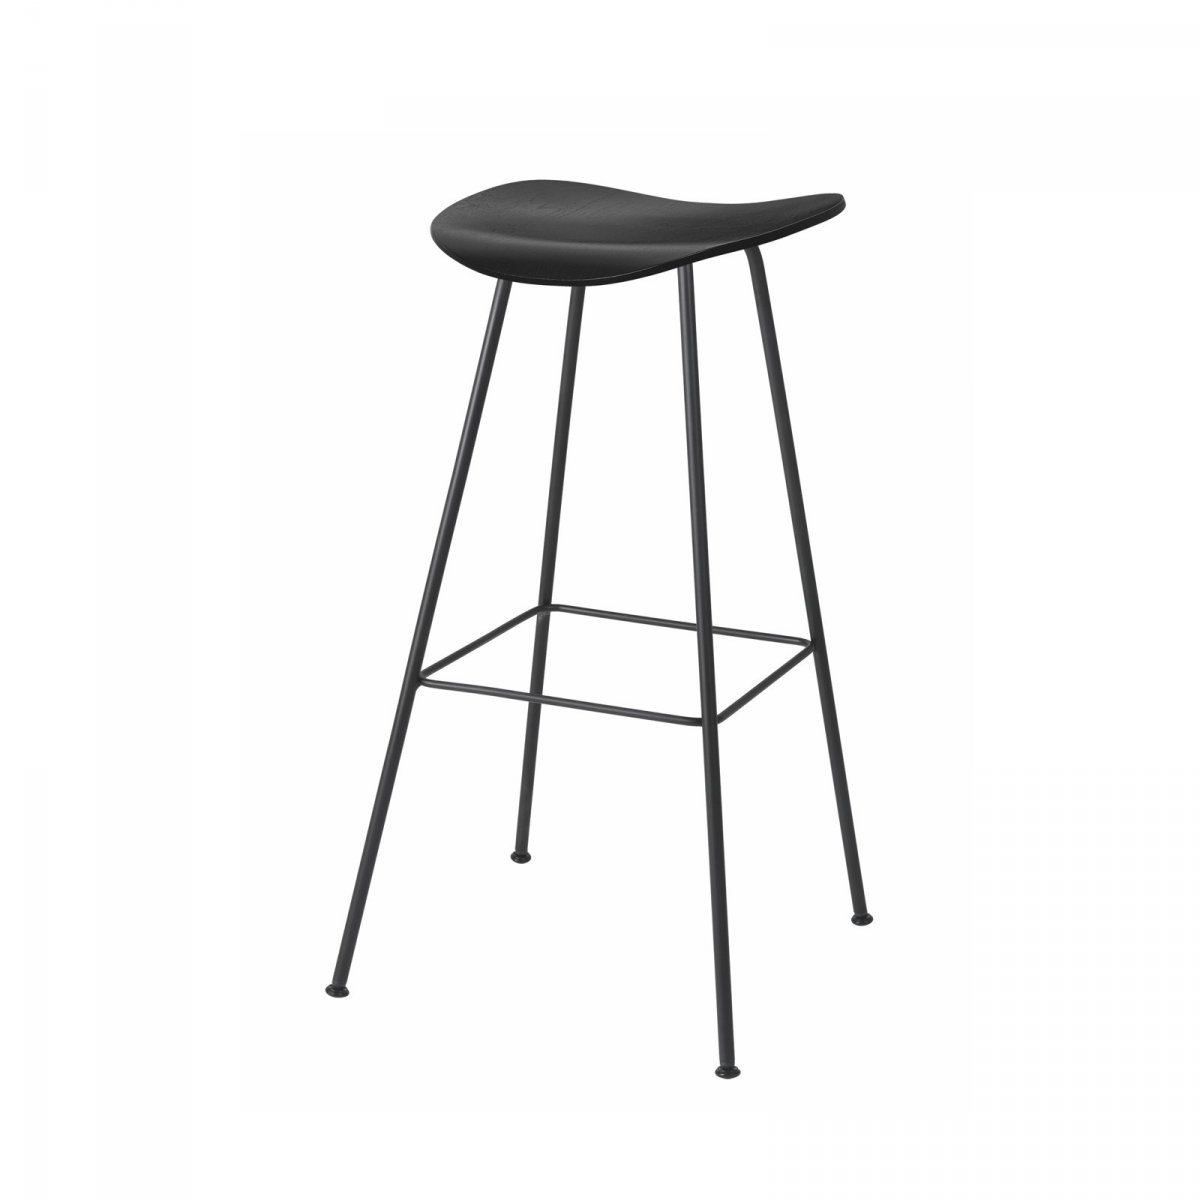 Gubi 2D Stool Center Base, black stained birch.